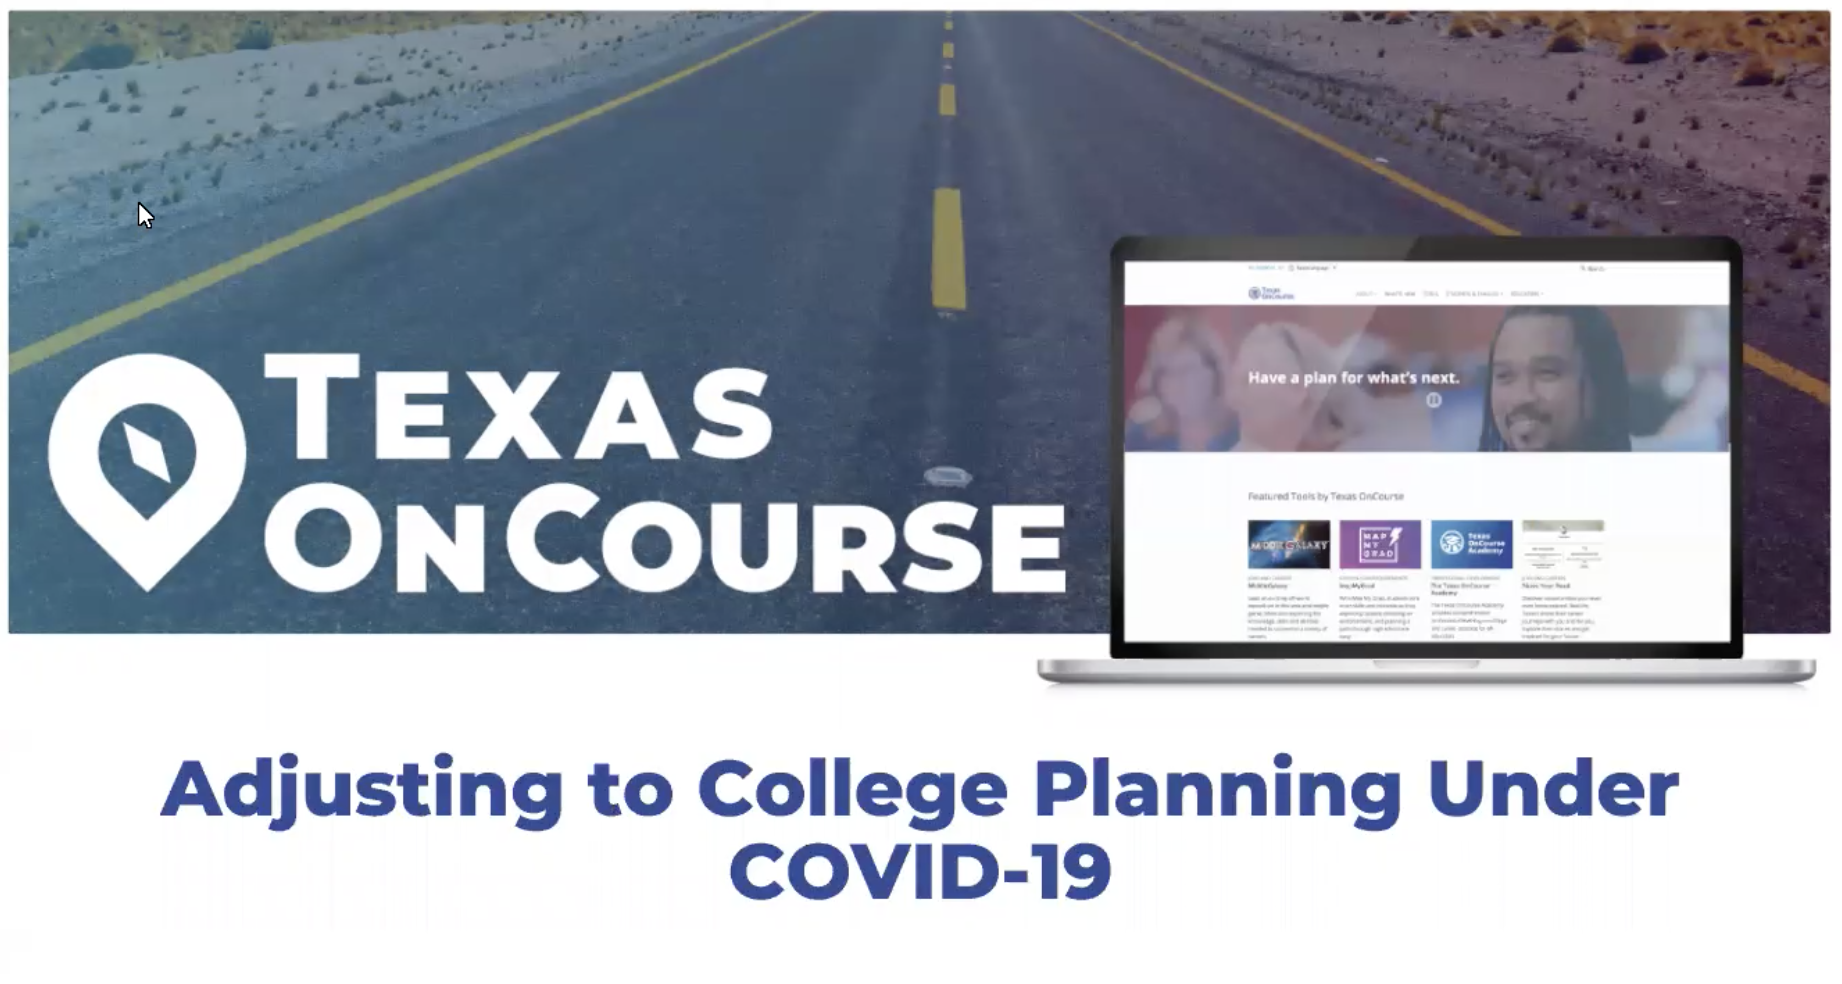 Adjusting to College Planning Under COVID-19